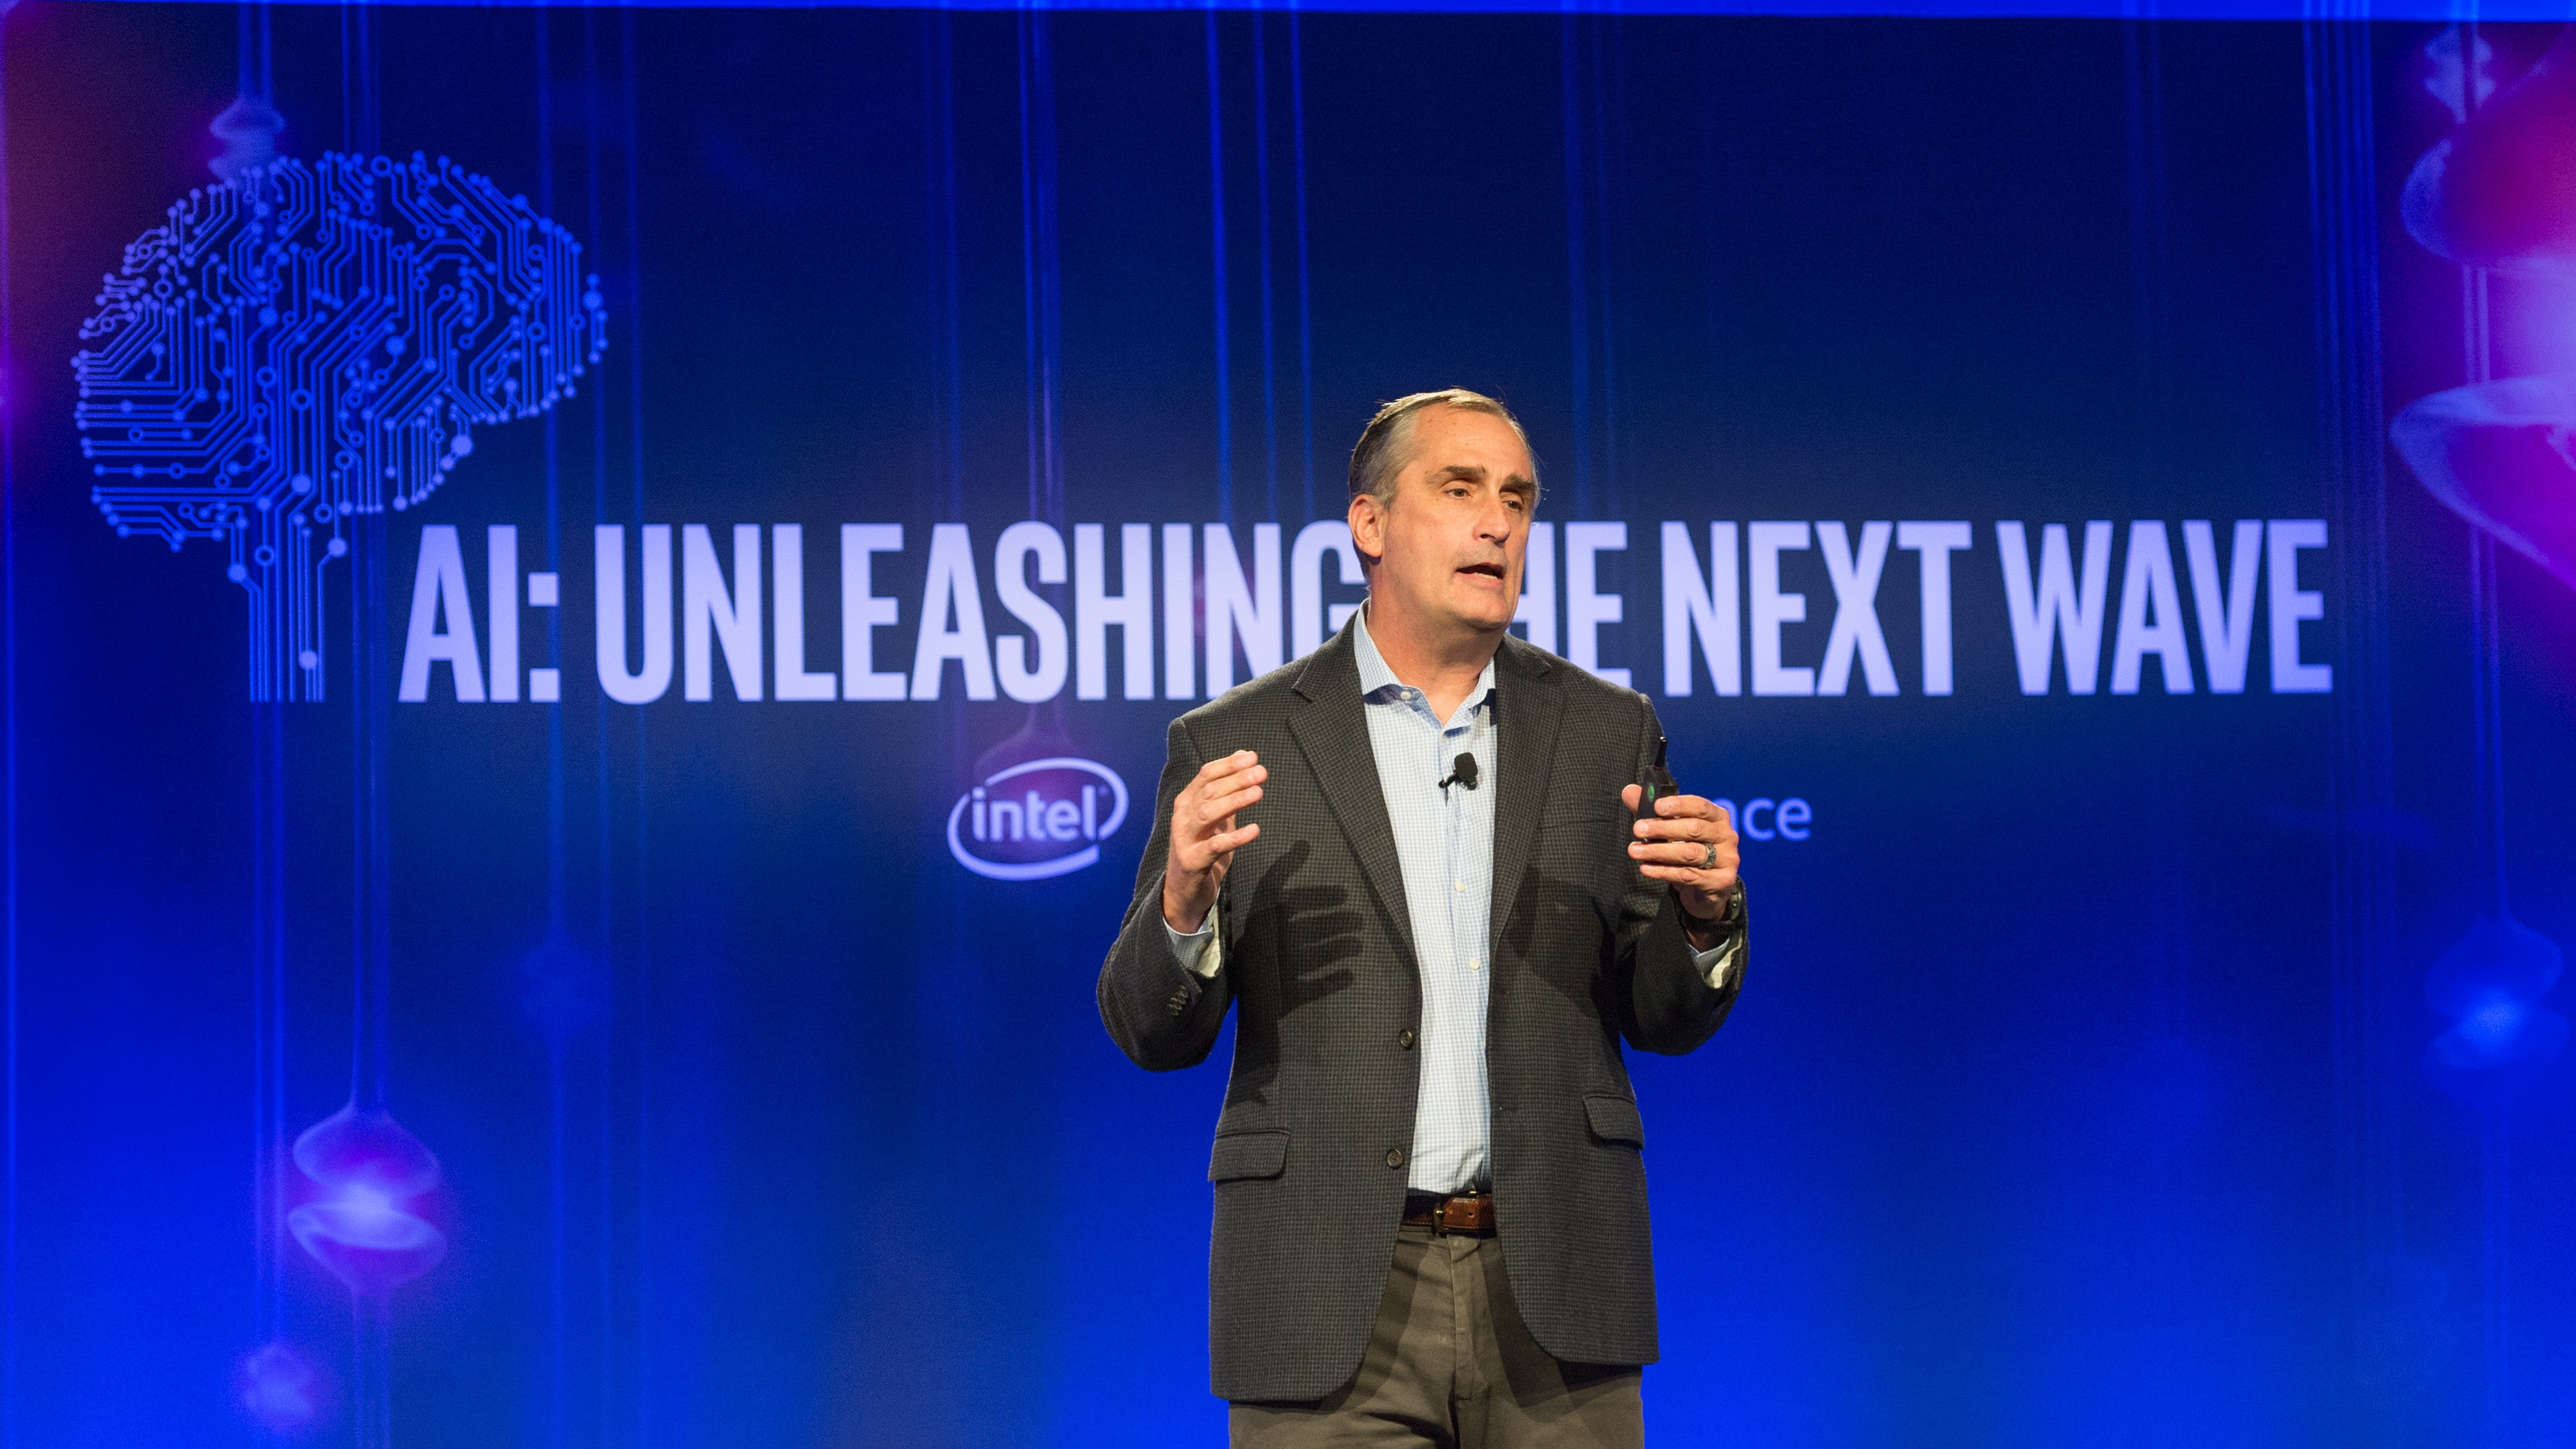 "Intel CEO Brian Krzanich on stage with ""AI: Unleashing the Next Wave"" projected behind."